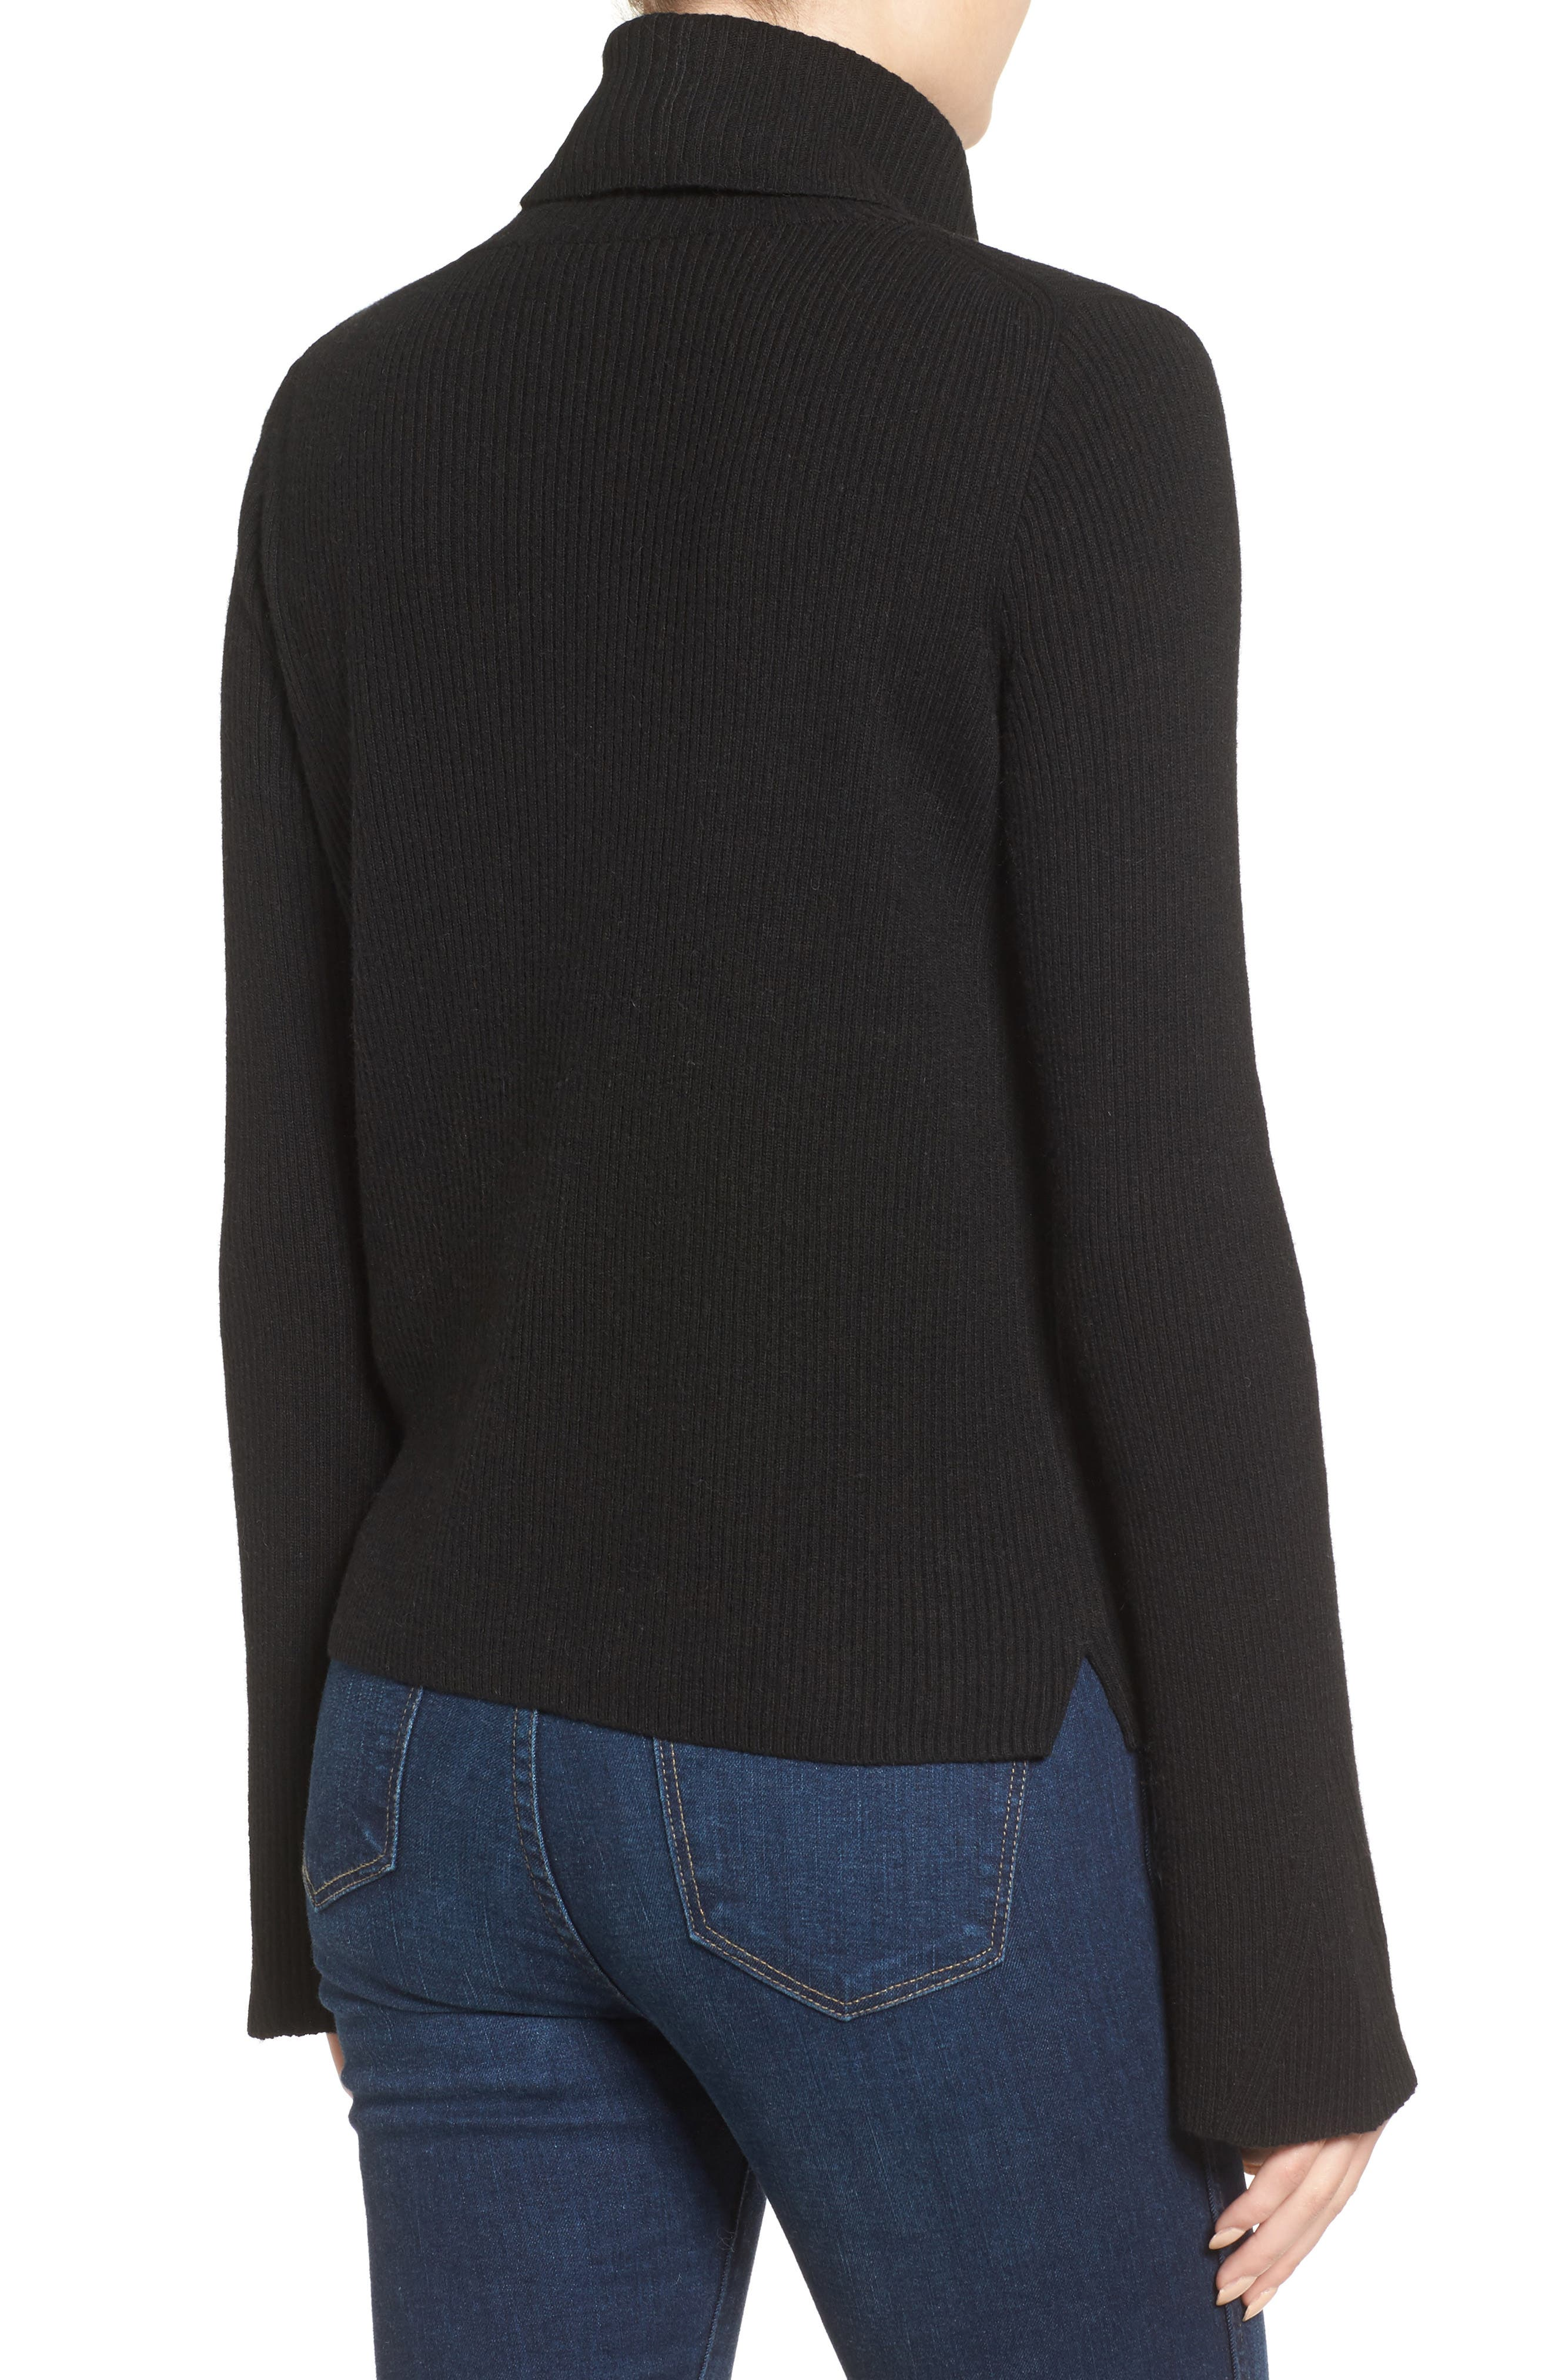 MADEWELL,                             Turtleneck Sweater,                             Alternate thumbnail 2, color,                             001